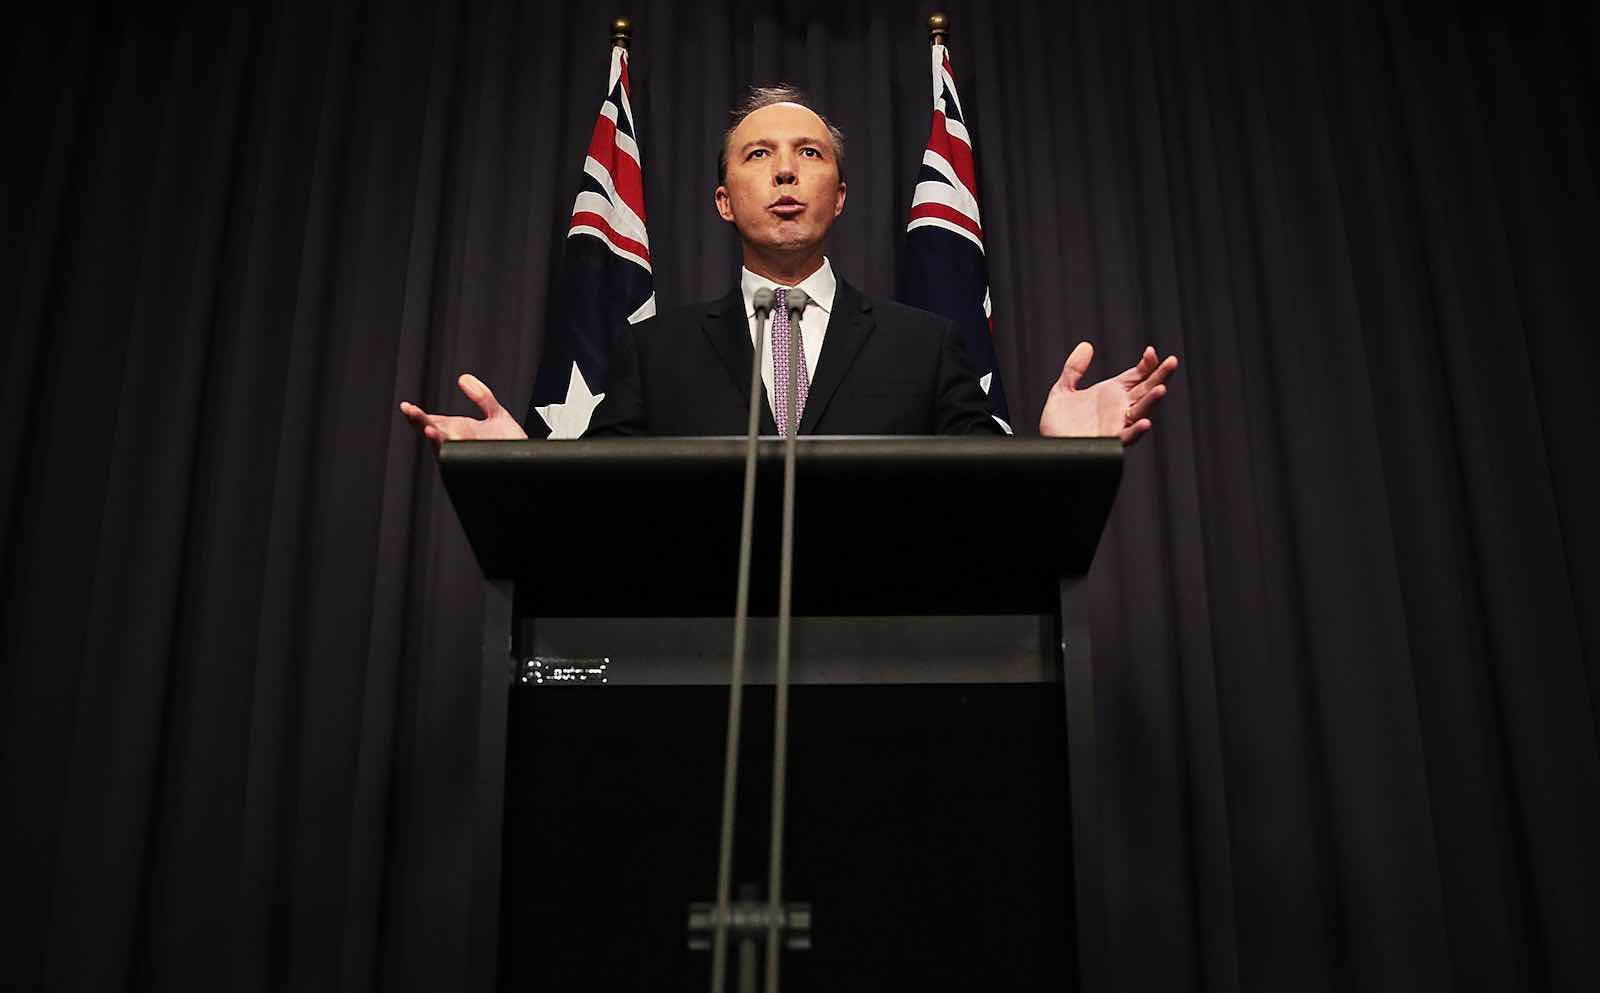 Peter Dutton has challenged Malcolm Turnbull for the job of Australian prime minister (Photo: Stefan Postles/Getty)